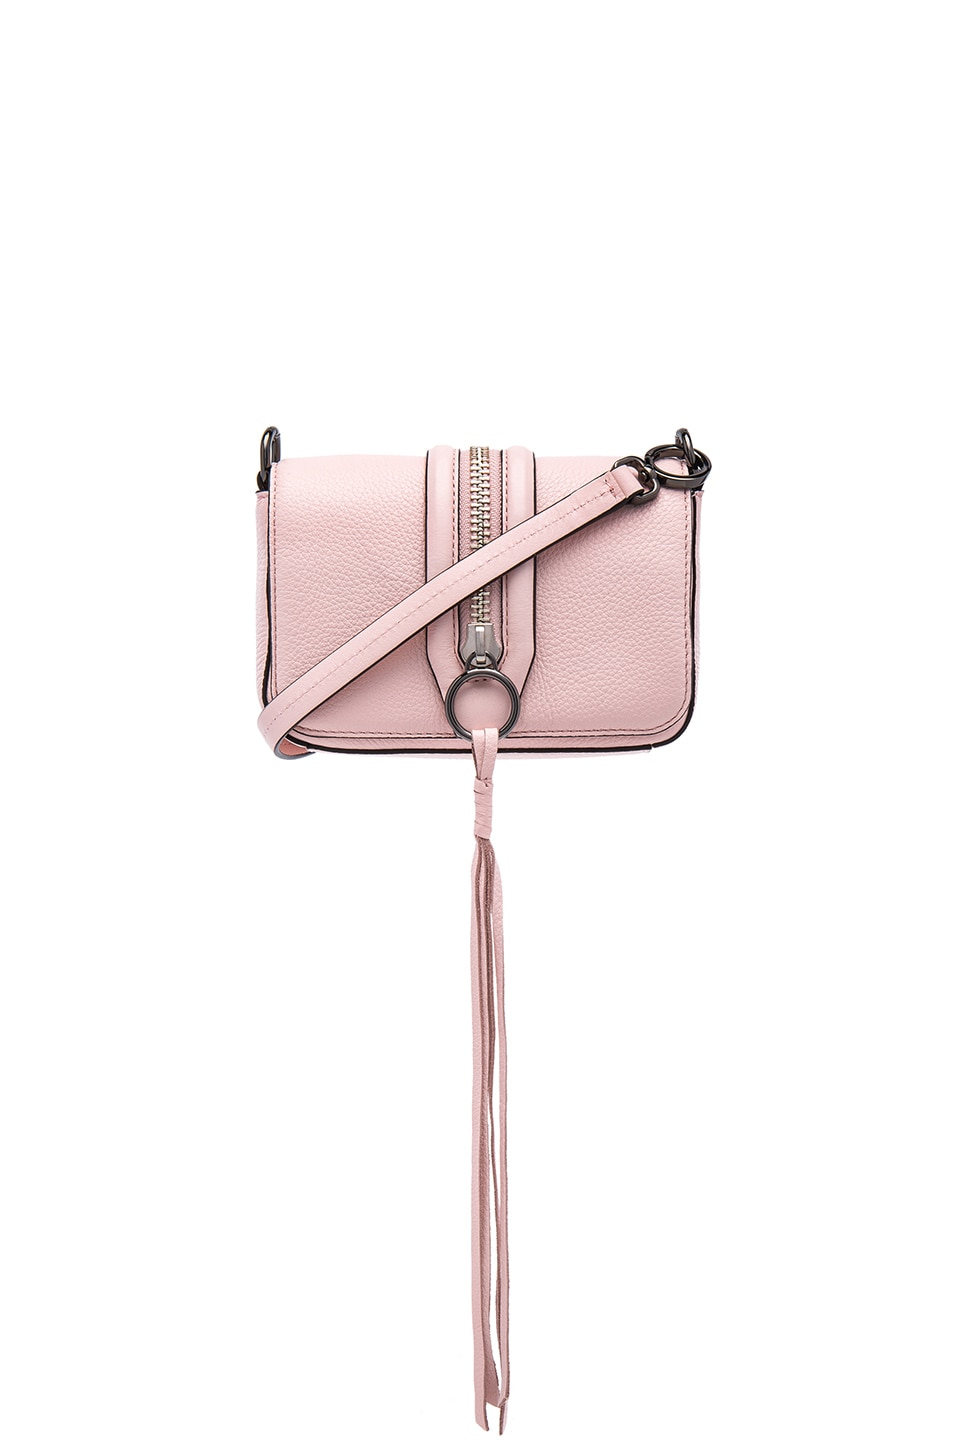 Rebecca Minkoff Mini Mara Crossbody Bag in Pale Blush